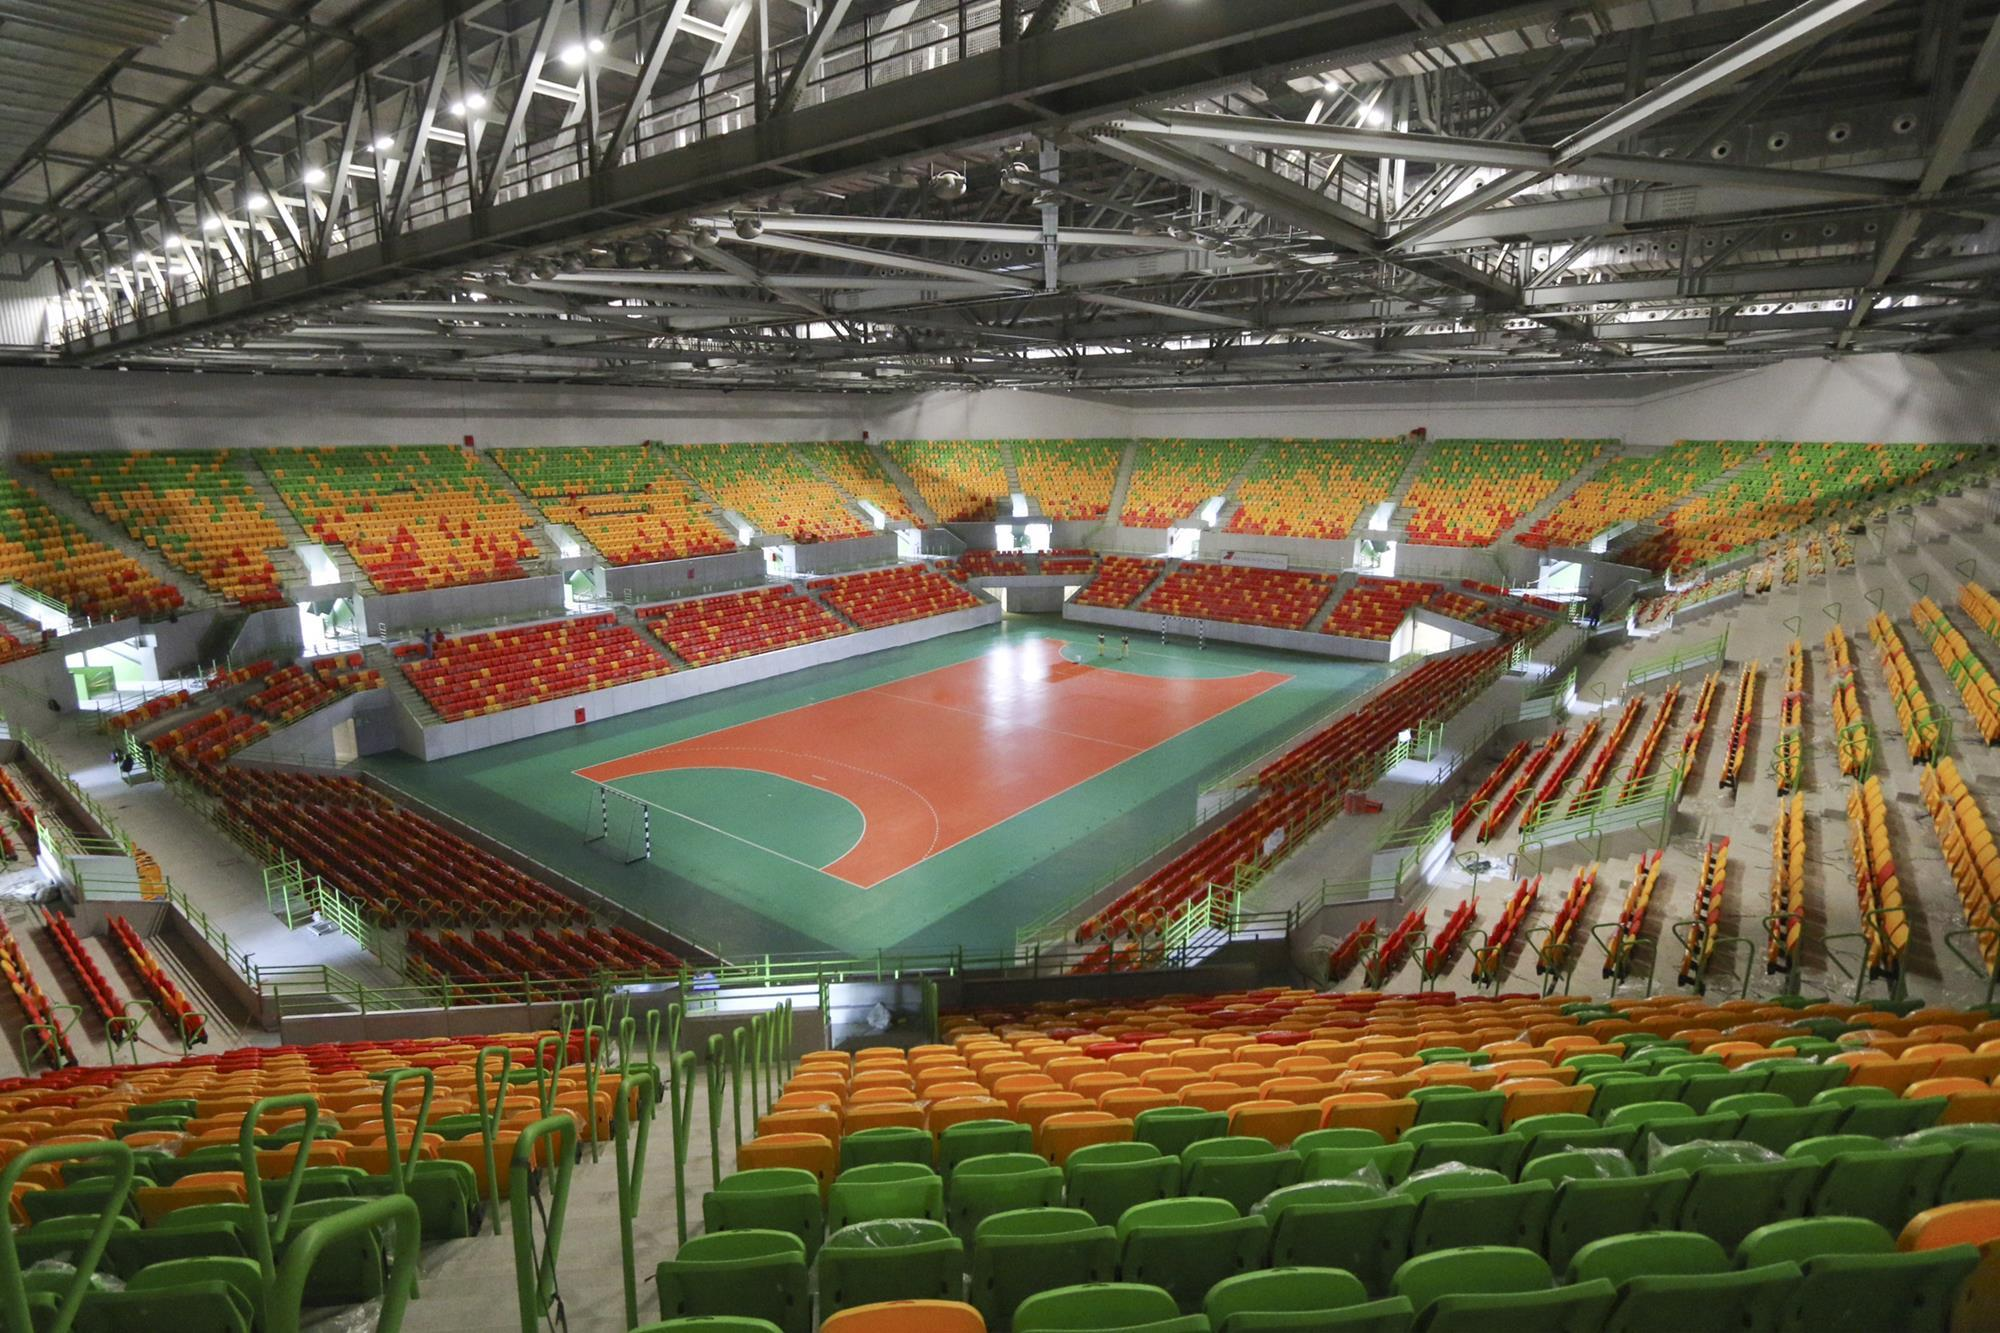 Education stadia and arenas sports and leisure healthcare residential - Andarchitects Showcases Nomad Olympics Arena News Building Design